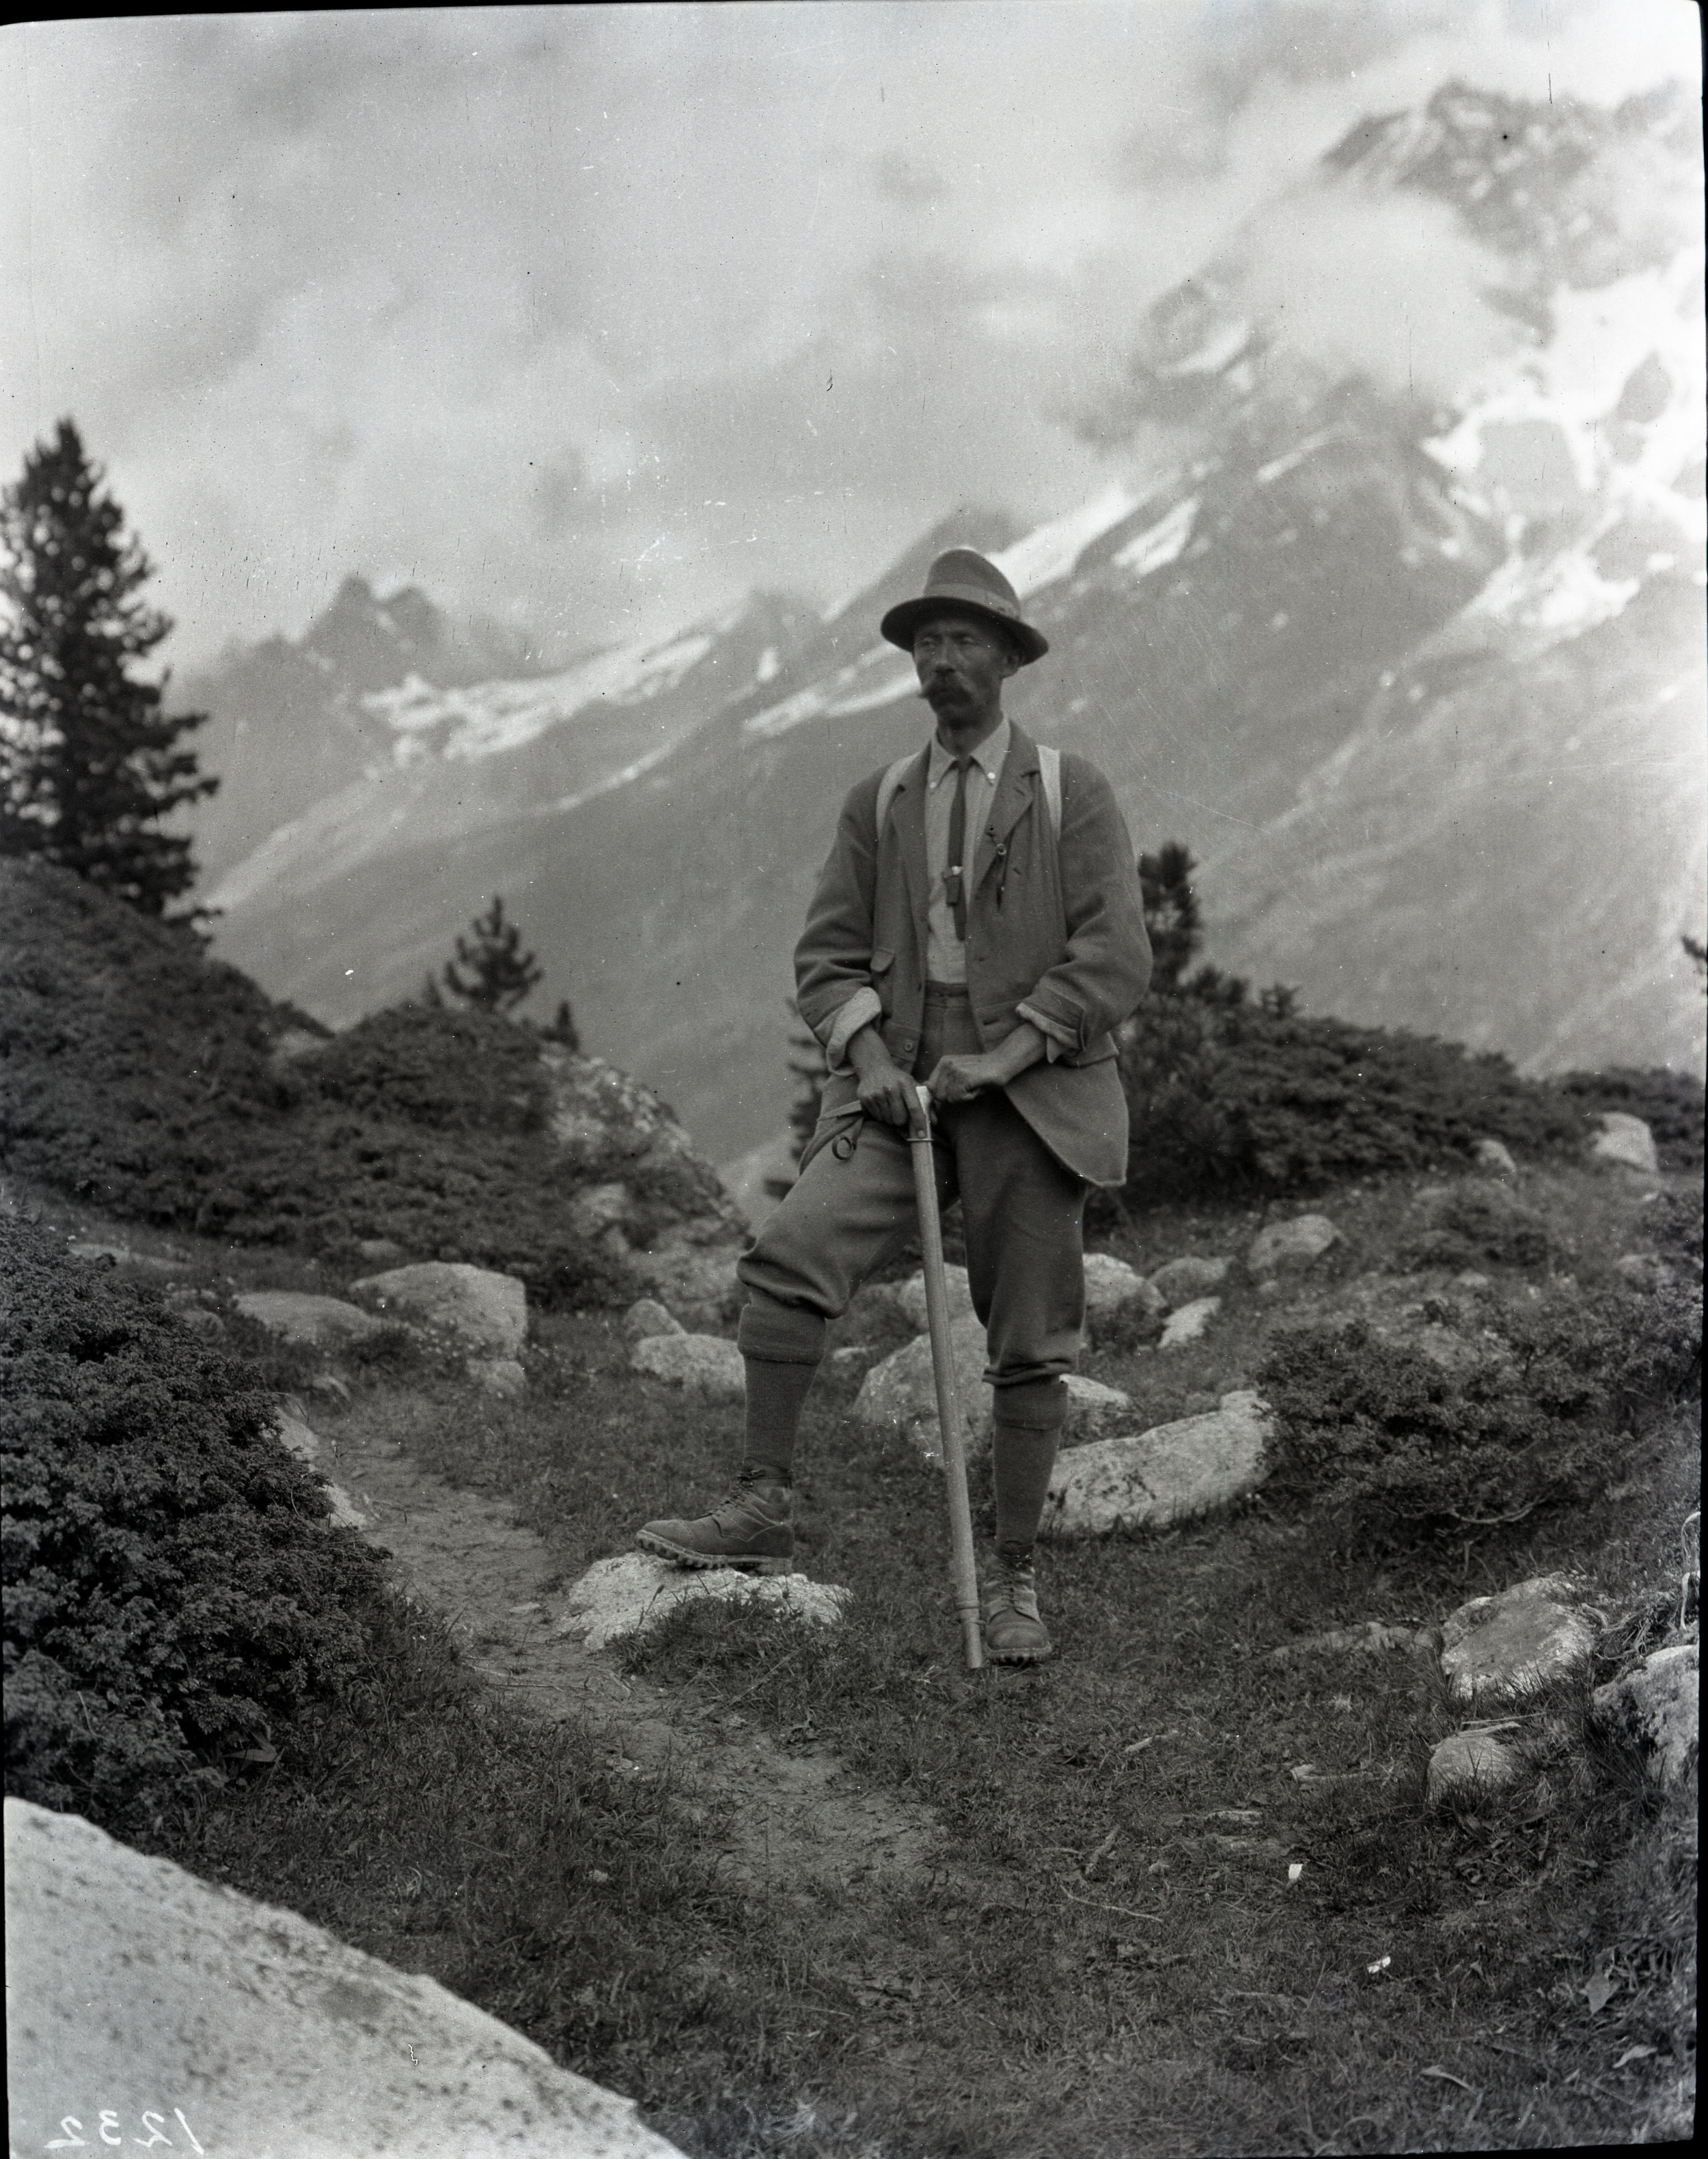 A mountaineer resting his hands on his ice axe while on the trail. From the Andrew James Gilmour collection